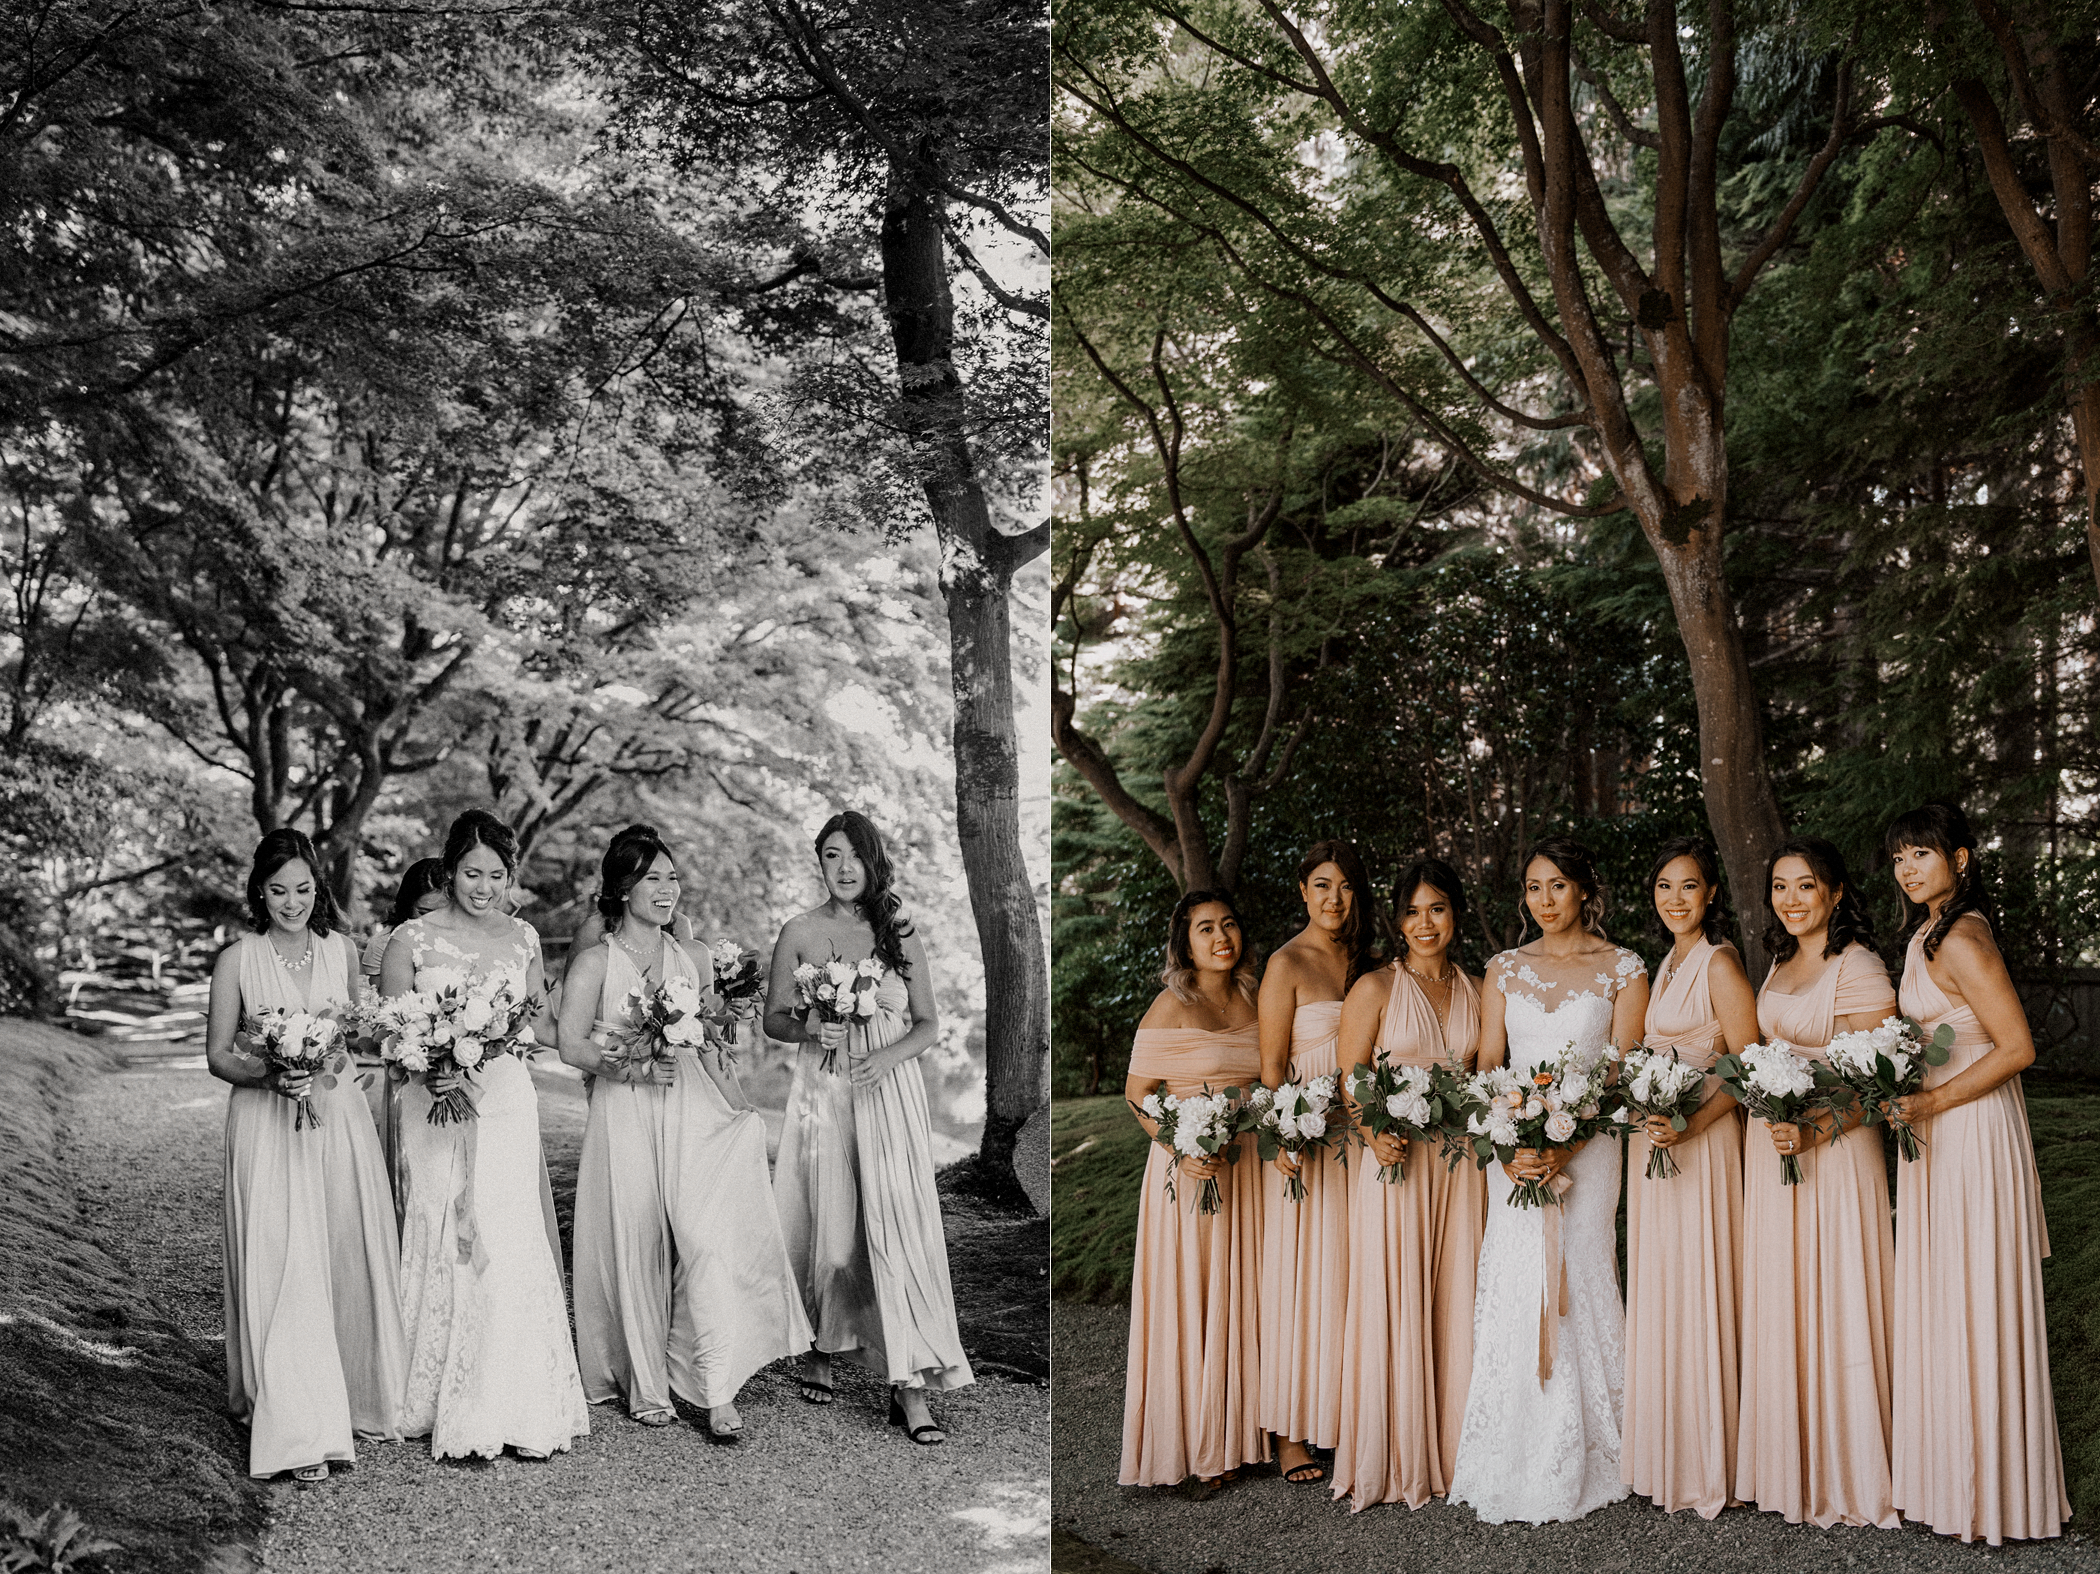 027-kaoverii-silva-vd-wedding-cecil-green-ubc-nitobe-garden-photography-blog.png